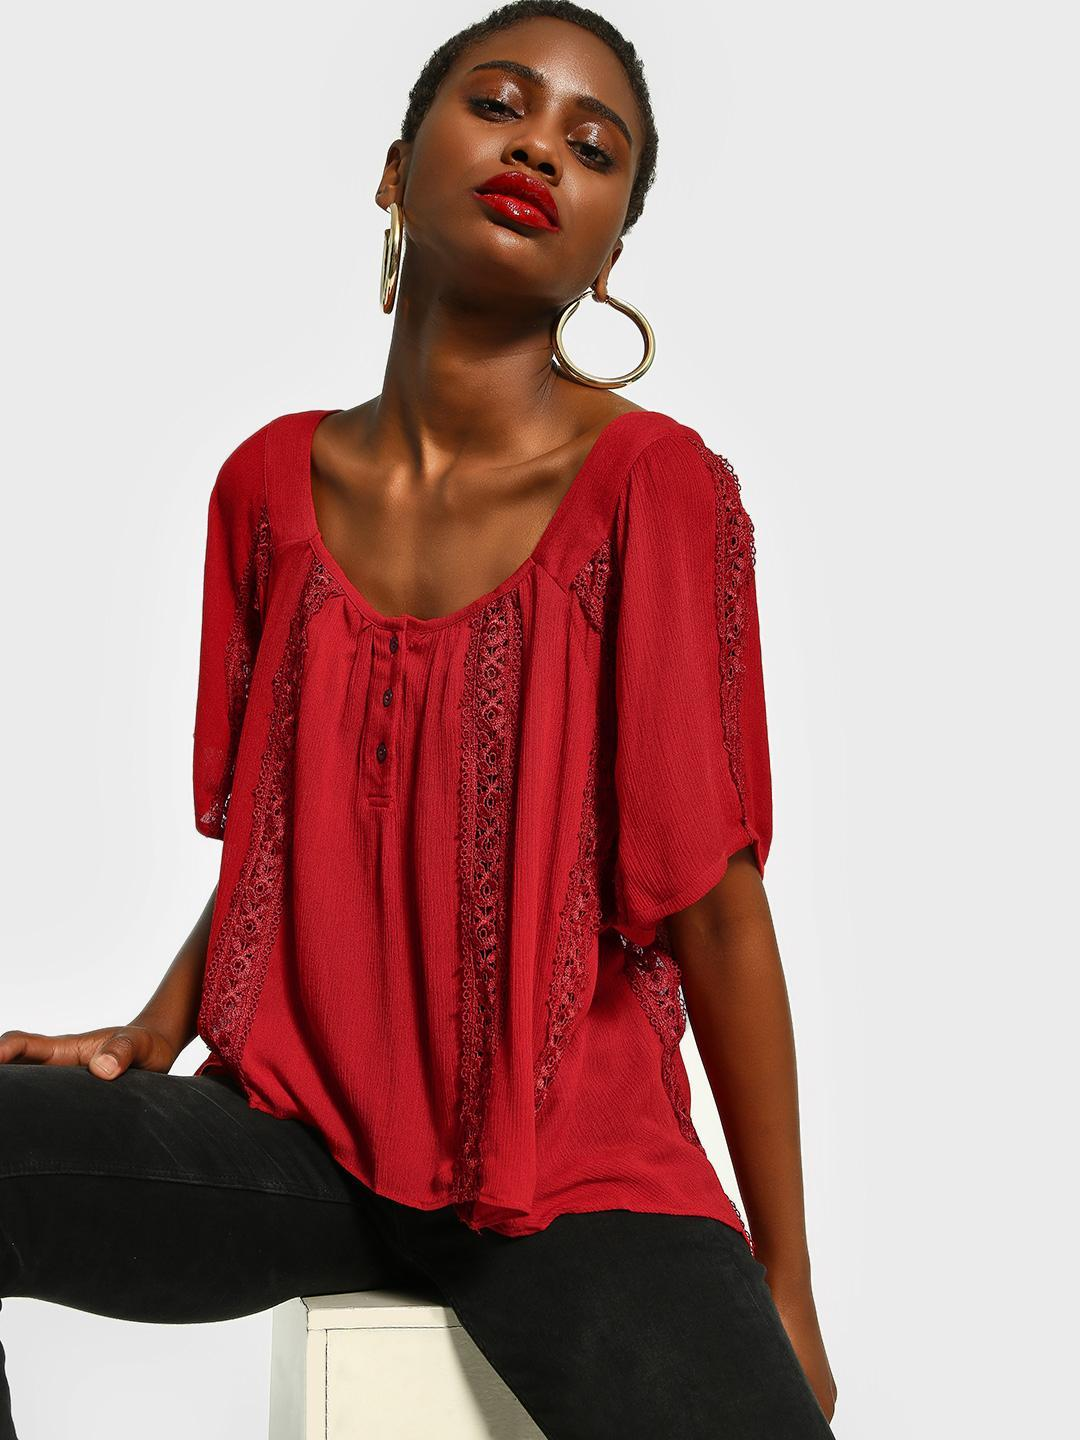 The Paperdoll Company Red Lace Trim Square Neck Blouse 1